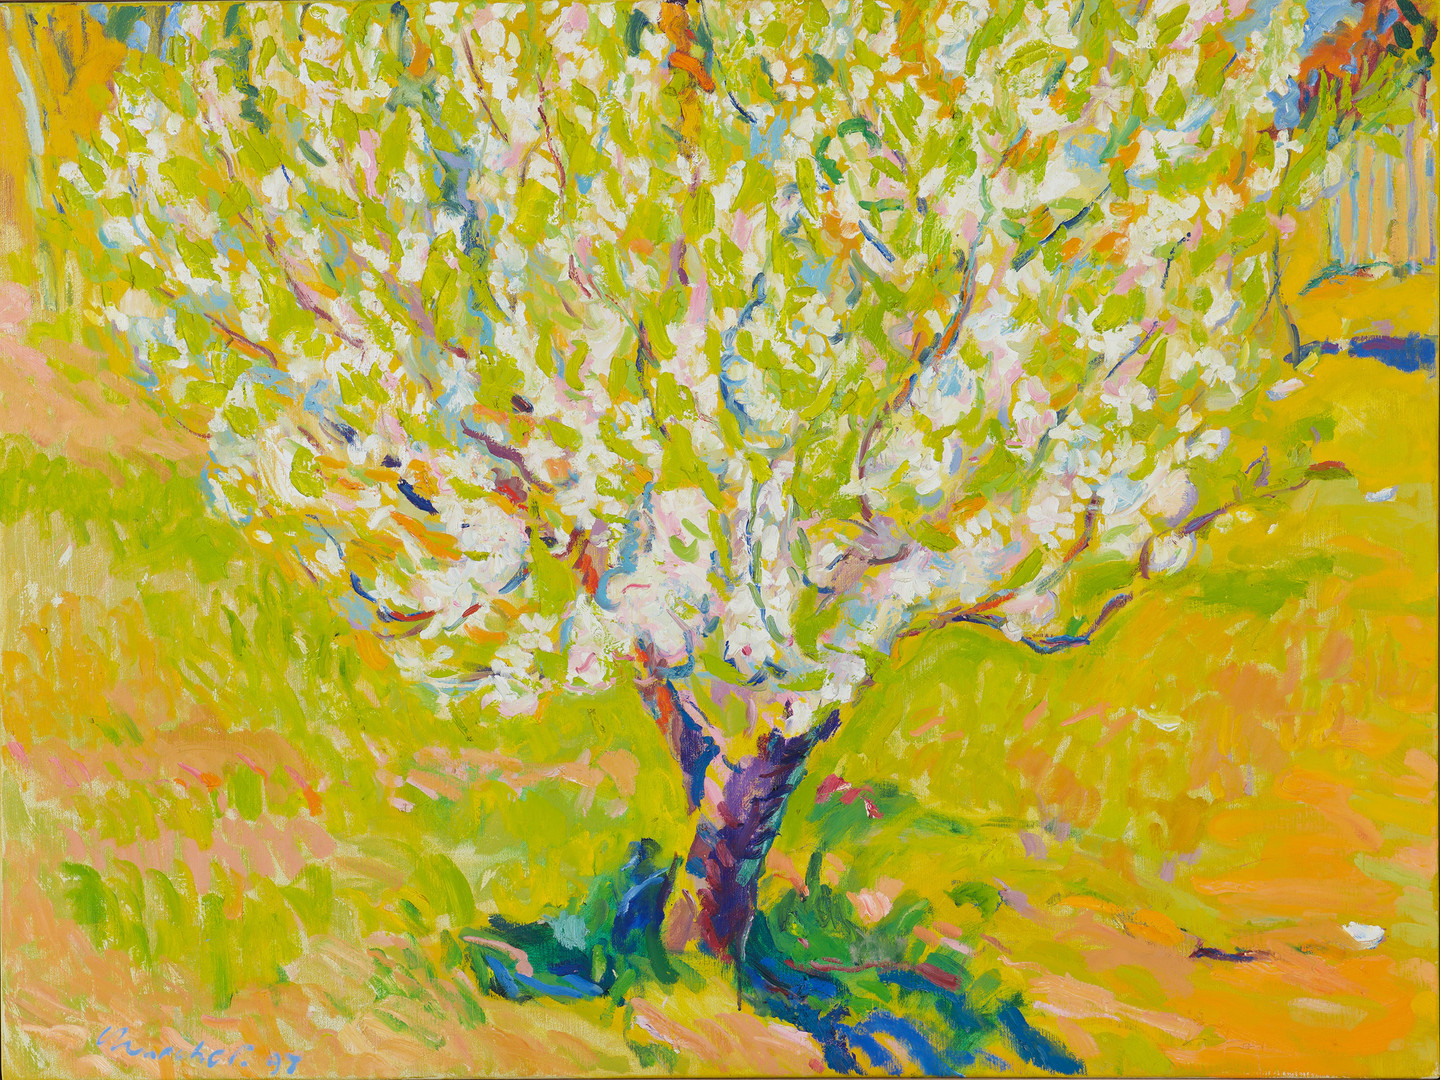 ROY CHURCHER (BRITISH, BORN 1933)  Wamboin Spring - Apple Blossom II 1997  oil on canvas  signed and dated lower left: Churcher 97  94 x 124 cm   $1200-1500